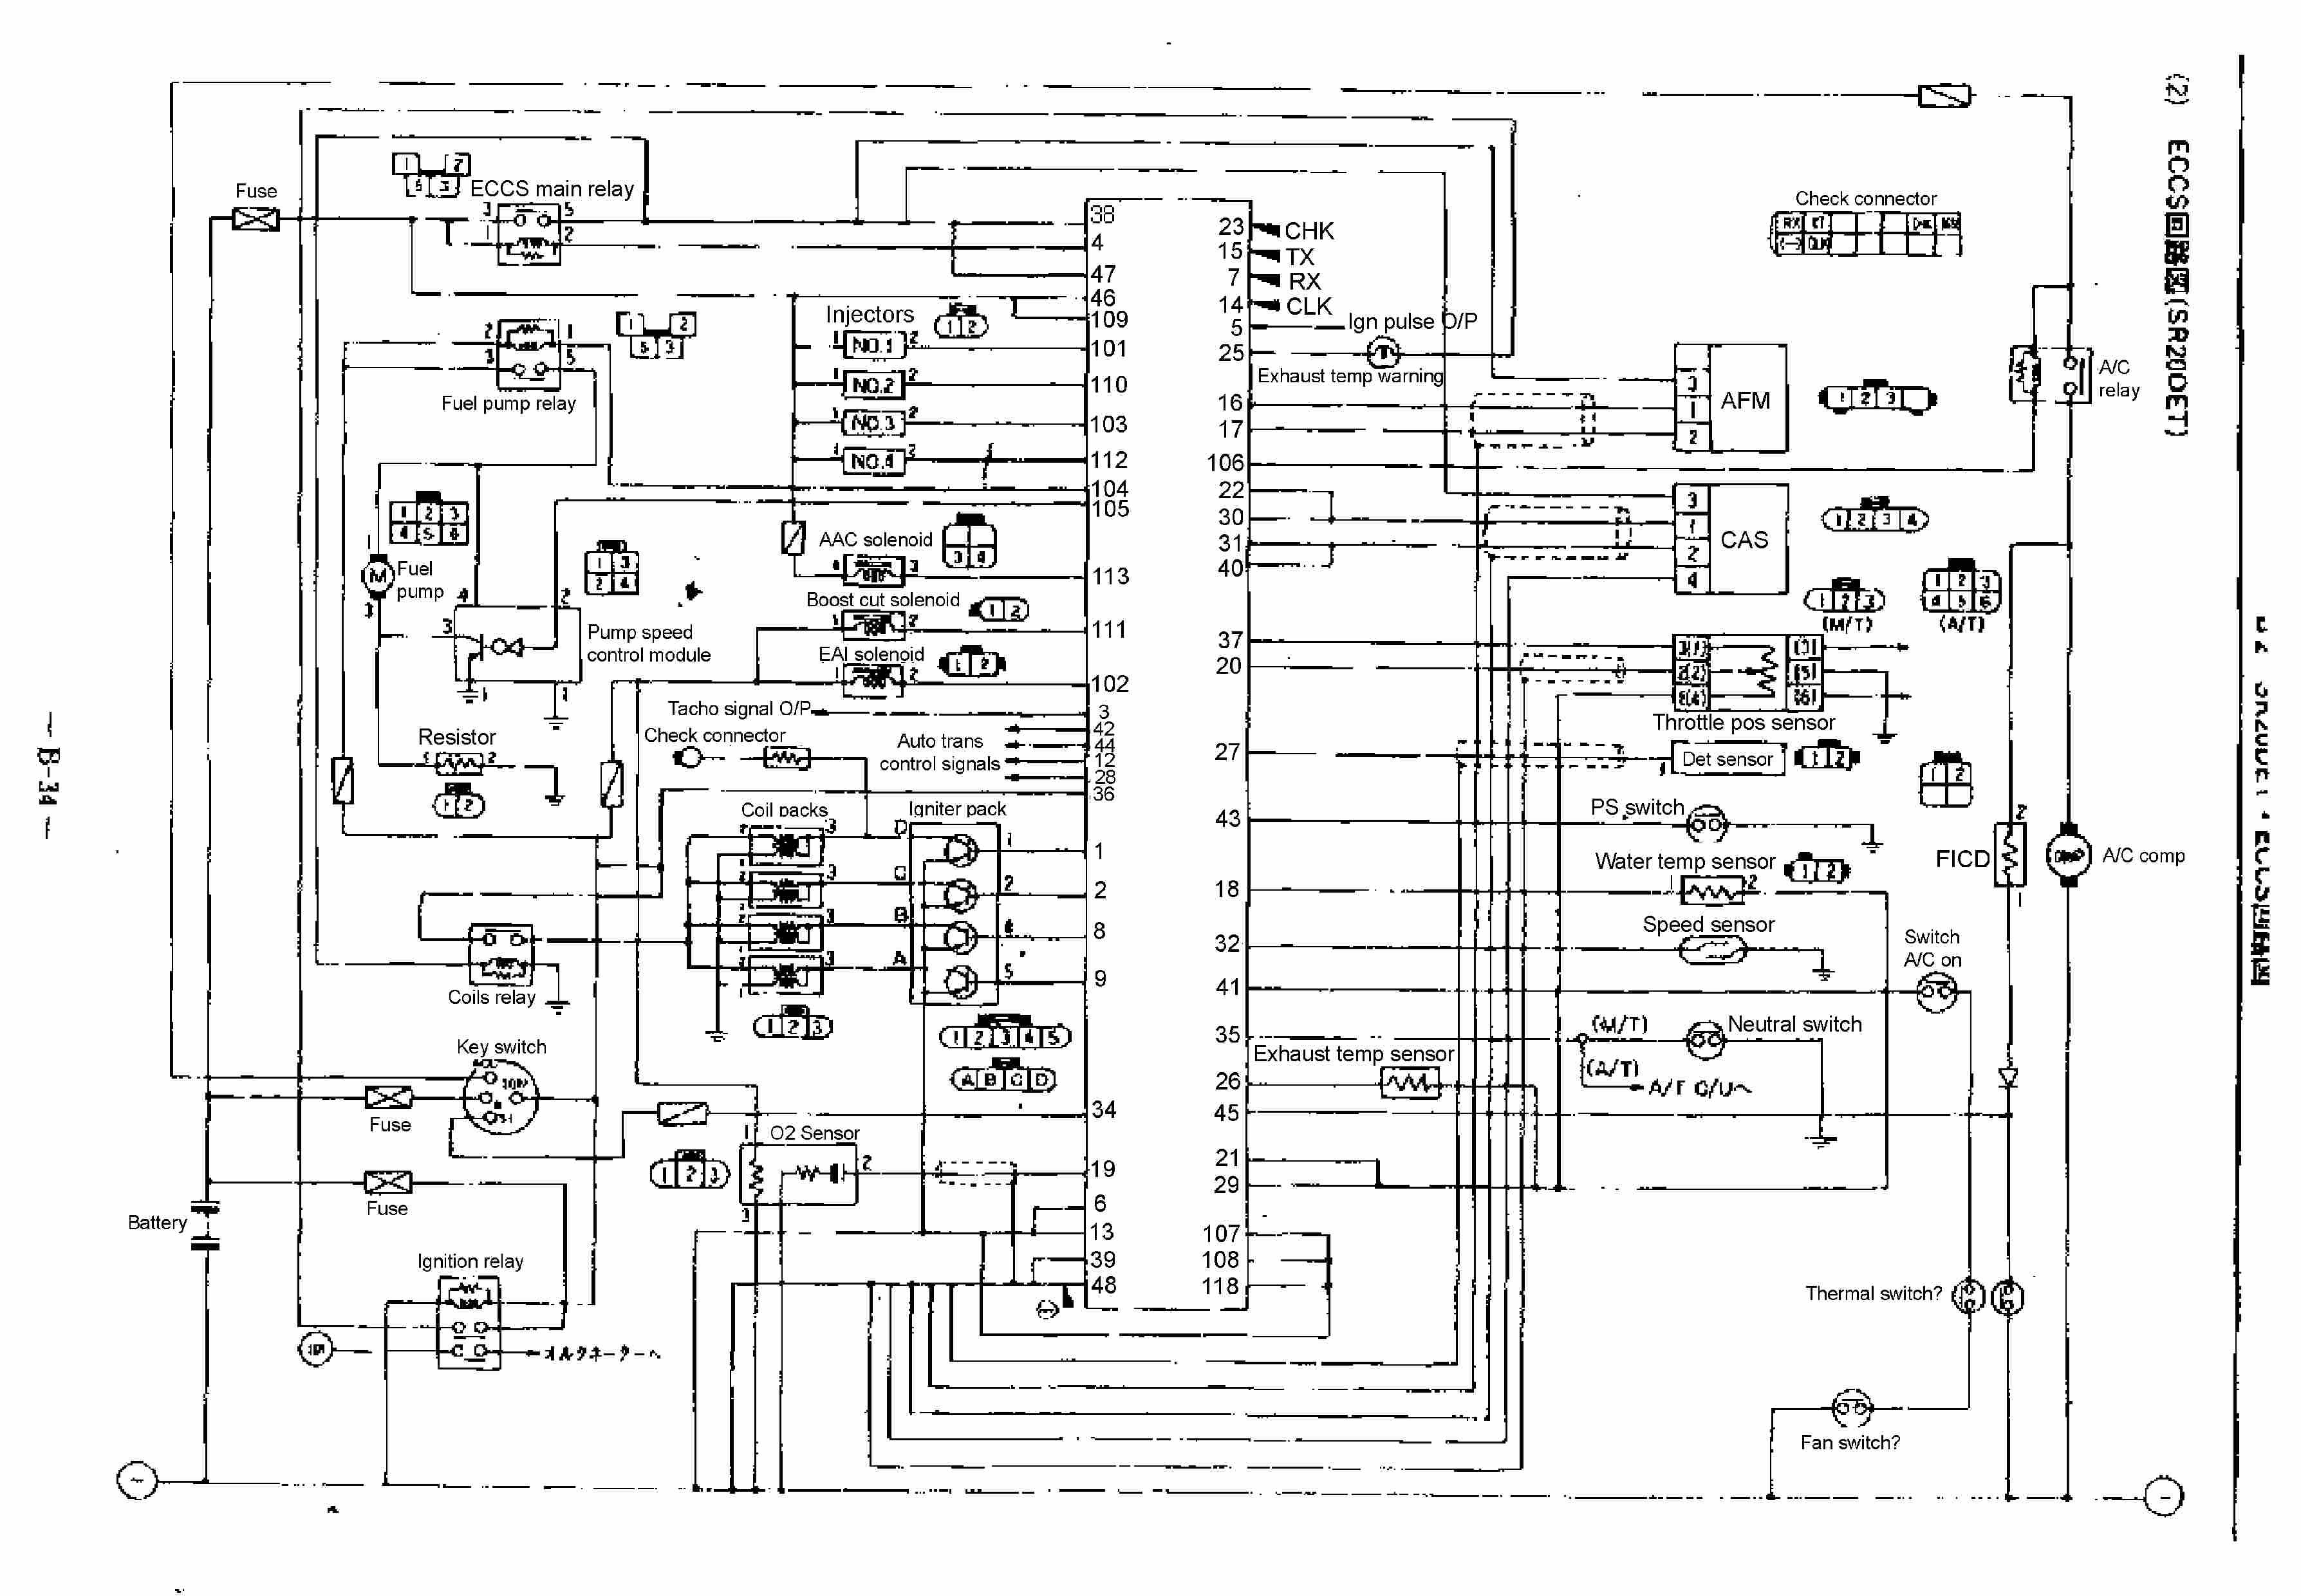 Diagram for Car Engine Electrical Wiring Diagrams Collision Body Repair Manual Nissan Note Of Diagram for Car Engine